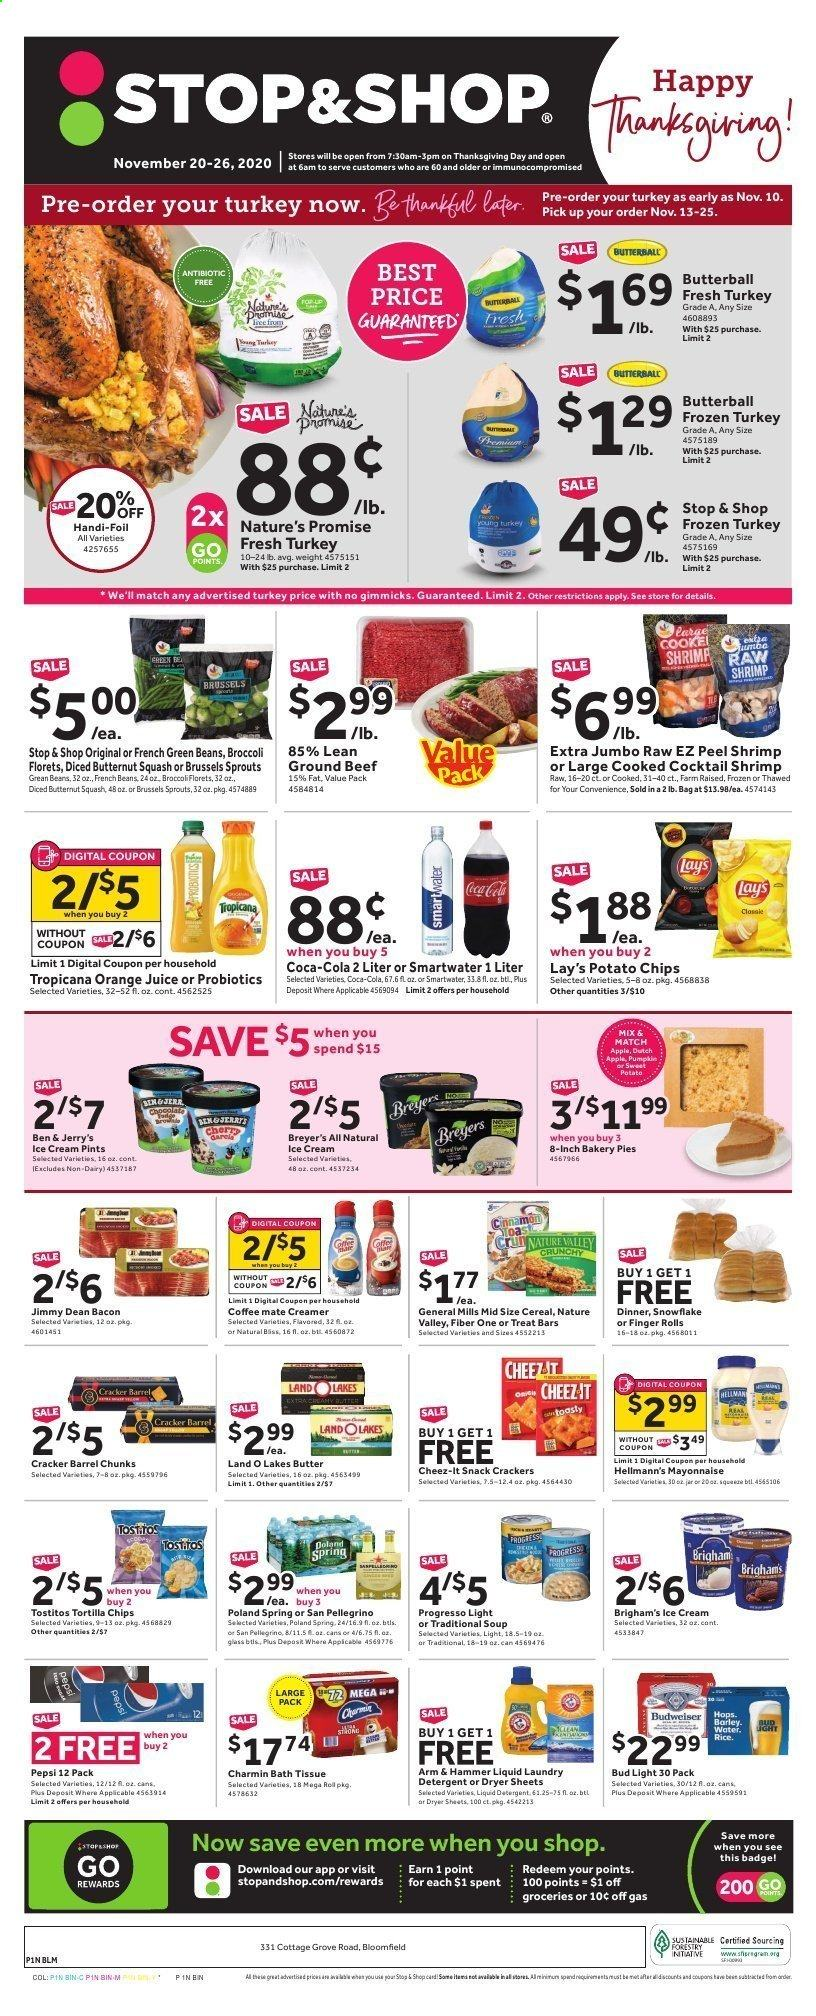 Stop & Shop Flyer - 11.20.2020 - 11.26.2020 - Sales products - apples, ARM & HAMMER, bacon, bag, barley, bath tissue, beans, beef meat, bin, broccoli, brussels sprouts, Budweiser, Butterball, butternut squash, cereals, Coca-Cola, coffee, detergent, french beans, frozen turkey, green beans, ground beef, mayonnaise, rice, snowflake, squash, sweet potatoes, tortilla chips, turkey, ice cream, jar, pin, potato chips, probiotics, pumpkin, Pepsi, orange juice, orange, chips, juice, soup, creamer, snack, hammer, AVG, Breyer, Bud Light, Lay's, cracker, liquid detergent, laundry detergent, Apple, shrimps, spring. Page 1.